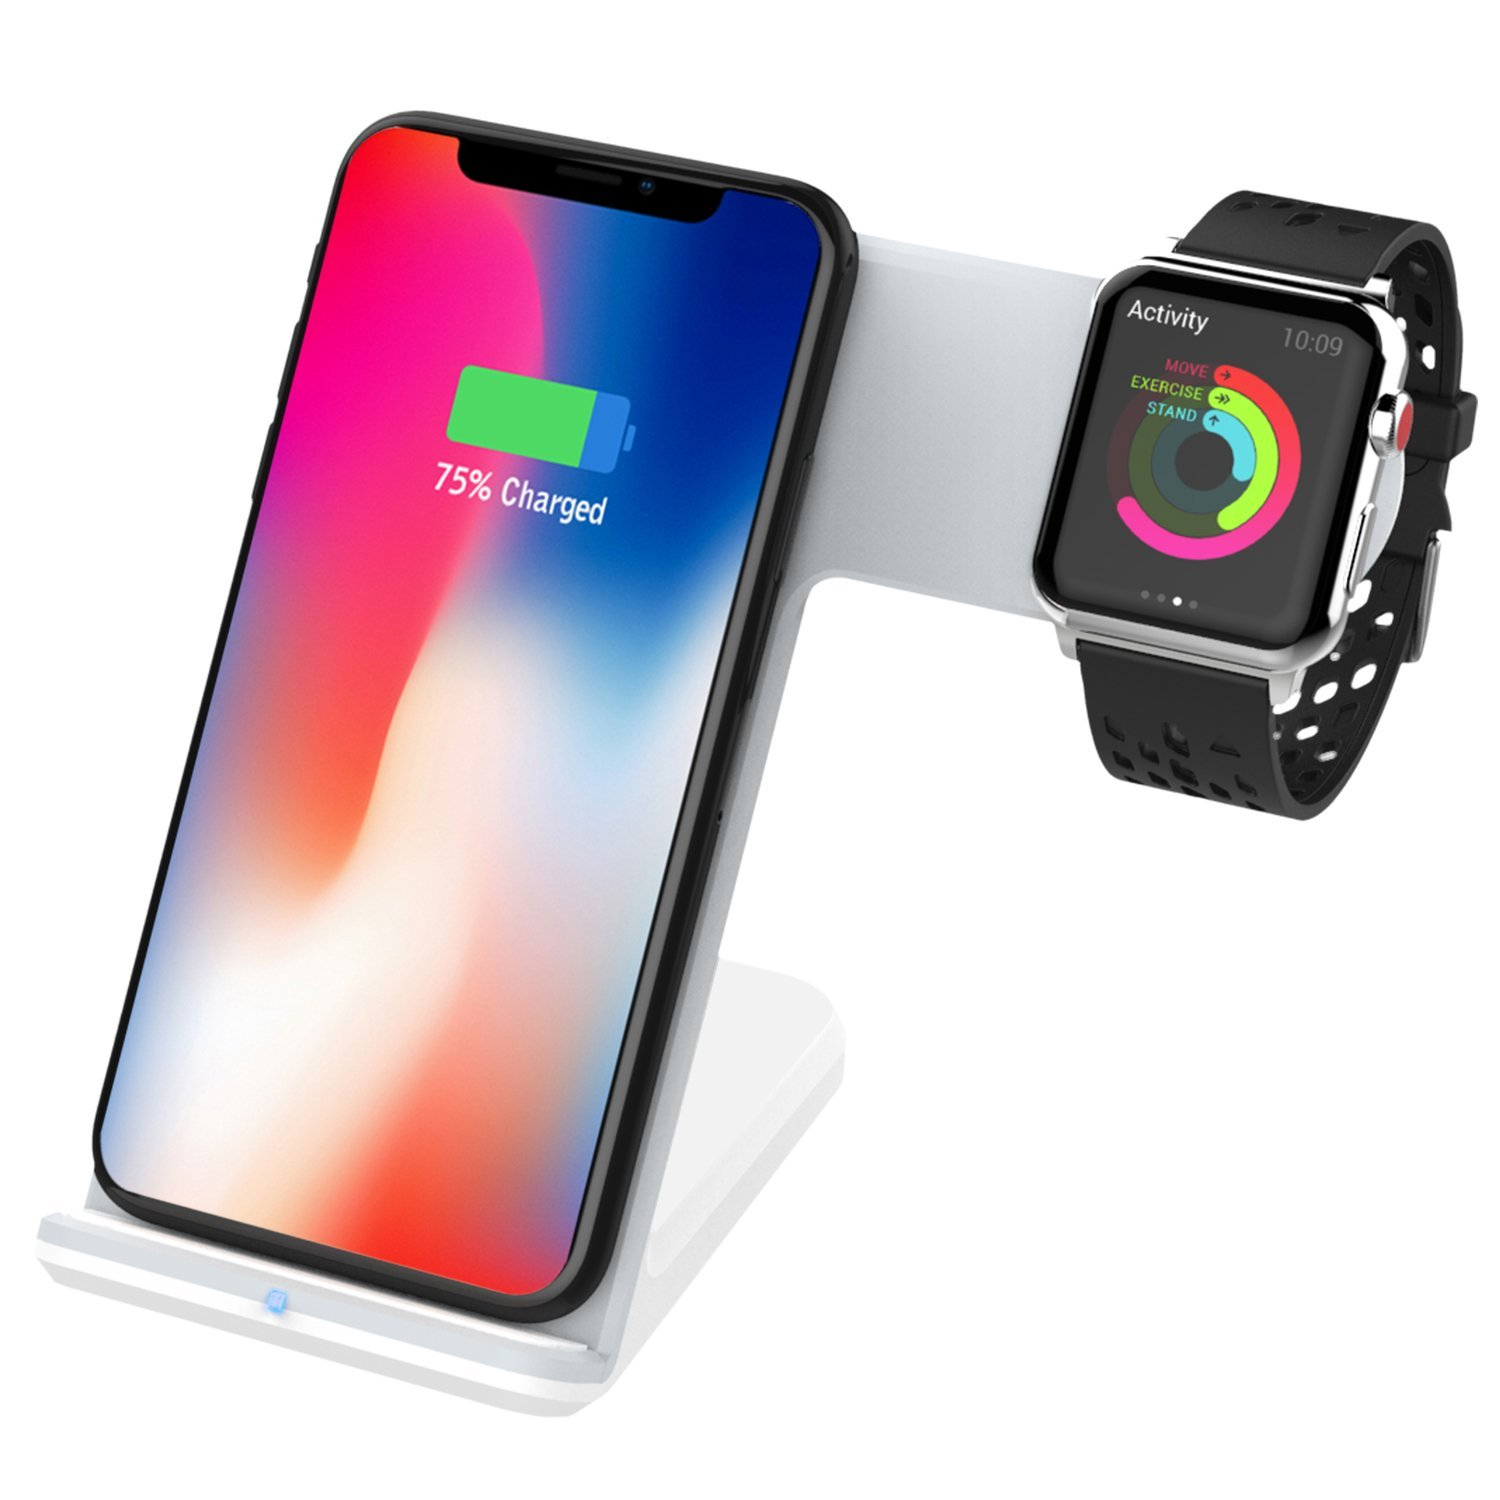 MoKo Qi Wireless  Charger Stand(Not Included Adapter), [2 in 1] Dual Qi Fast Charging Dock Compatible iWatch Series 2/3(Not Fit Series 4), iPhone XS/XR/XS MAX/X/8/8 Plus, Other Qi-Enabled Devices - Black